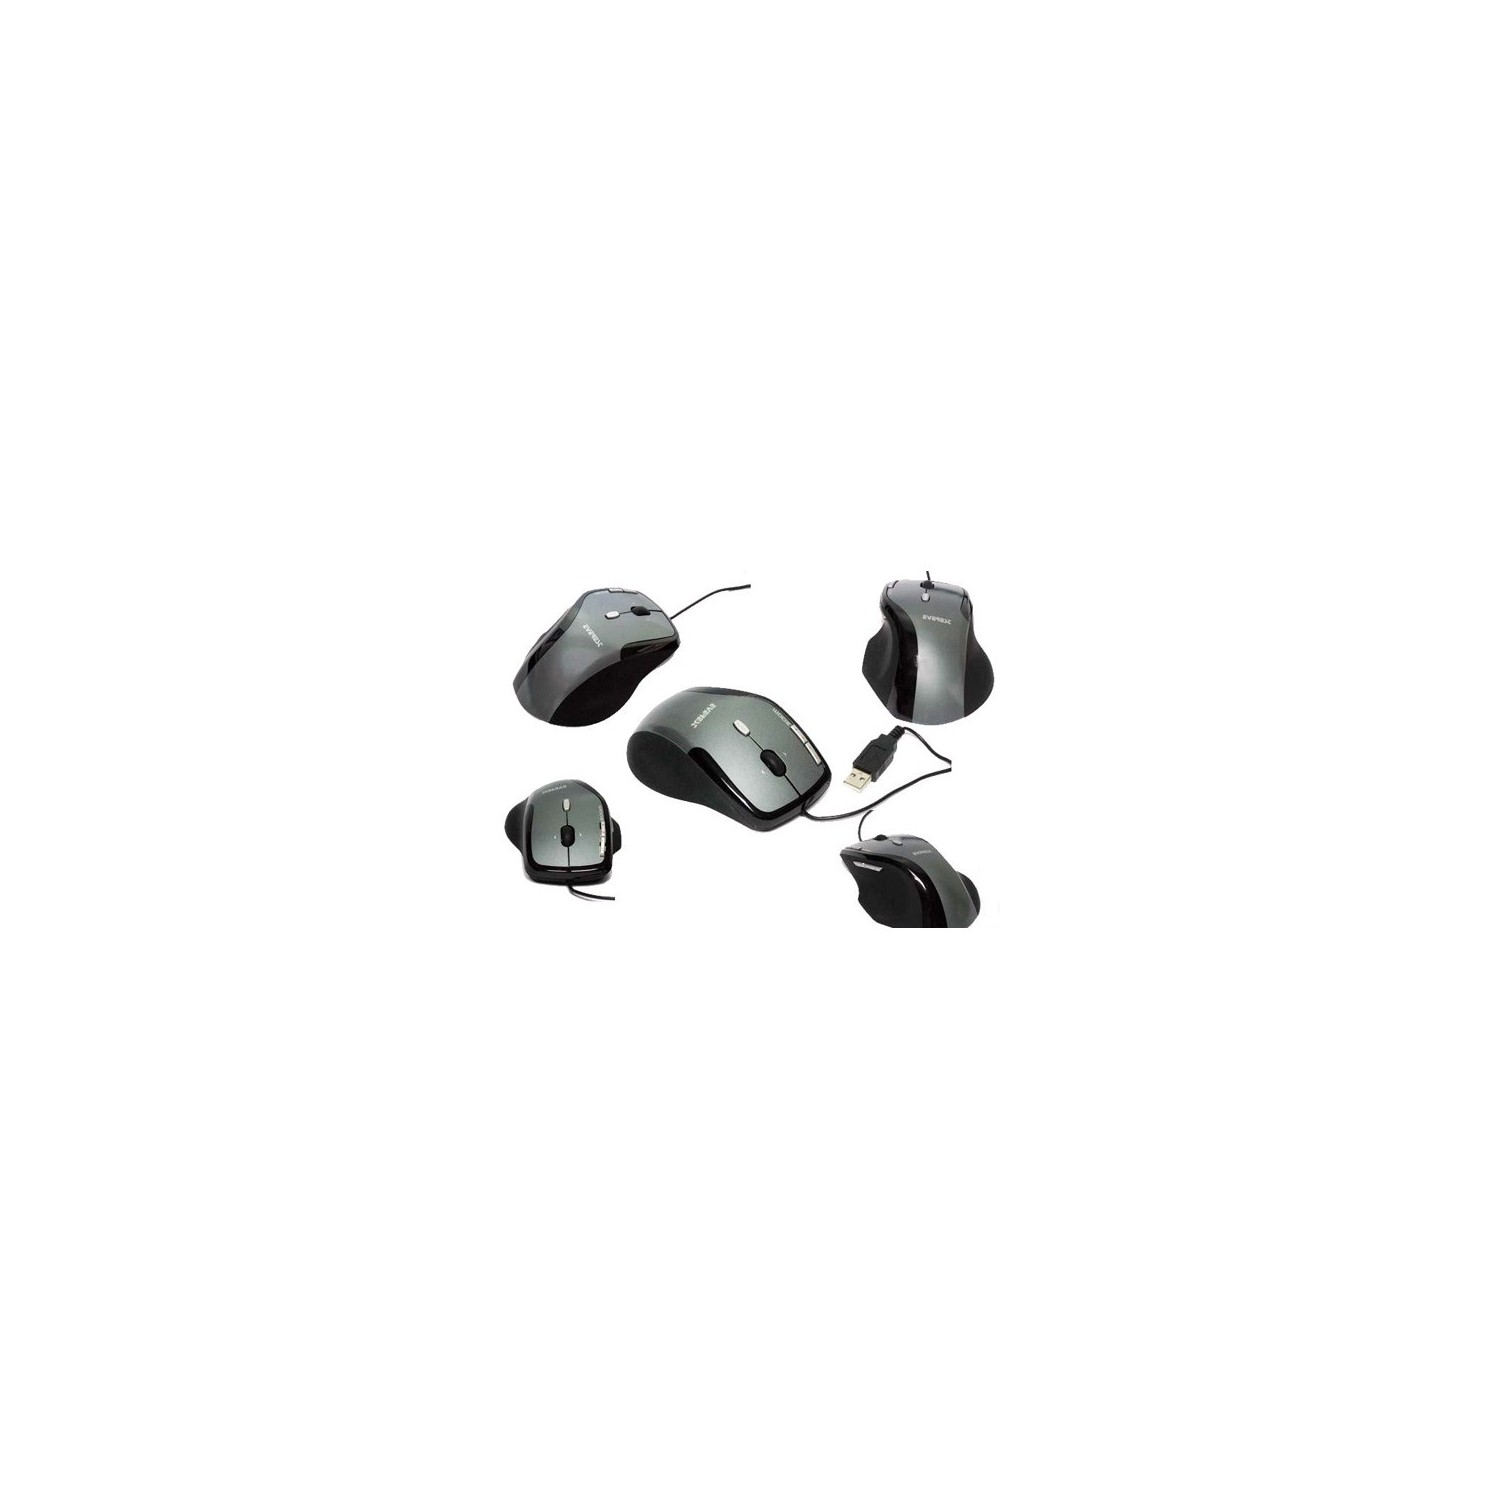 NEW DRIVER: EVEREST M7130 MOUSE